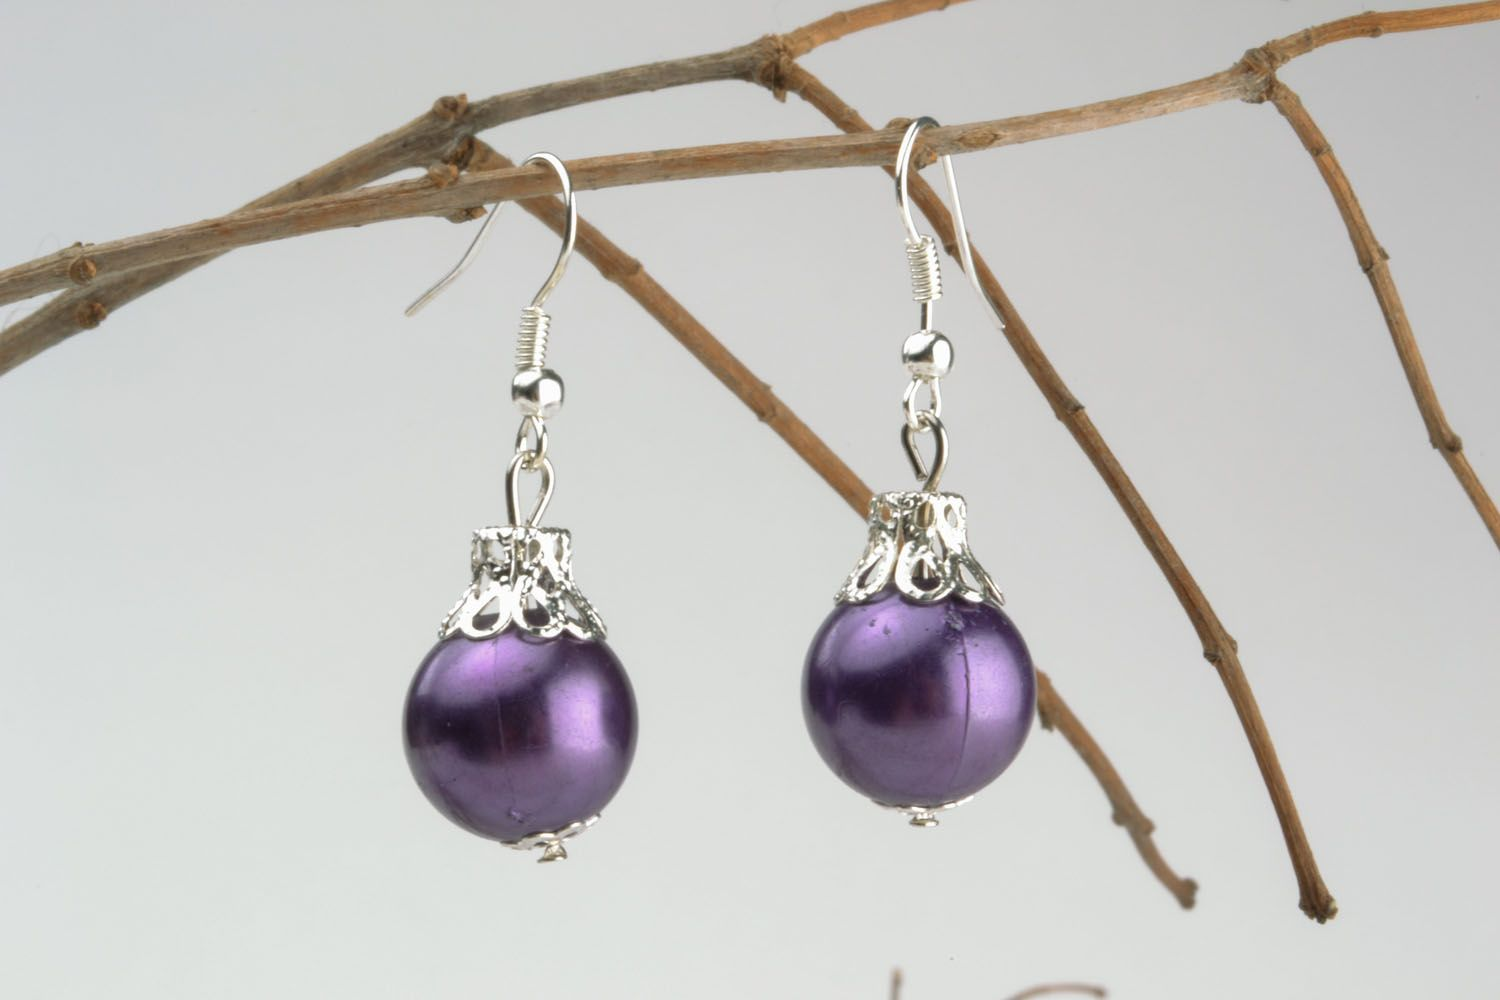 Earrings in the shape of Christmas tree balls photo 1